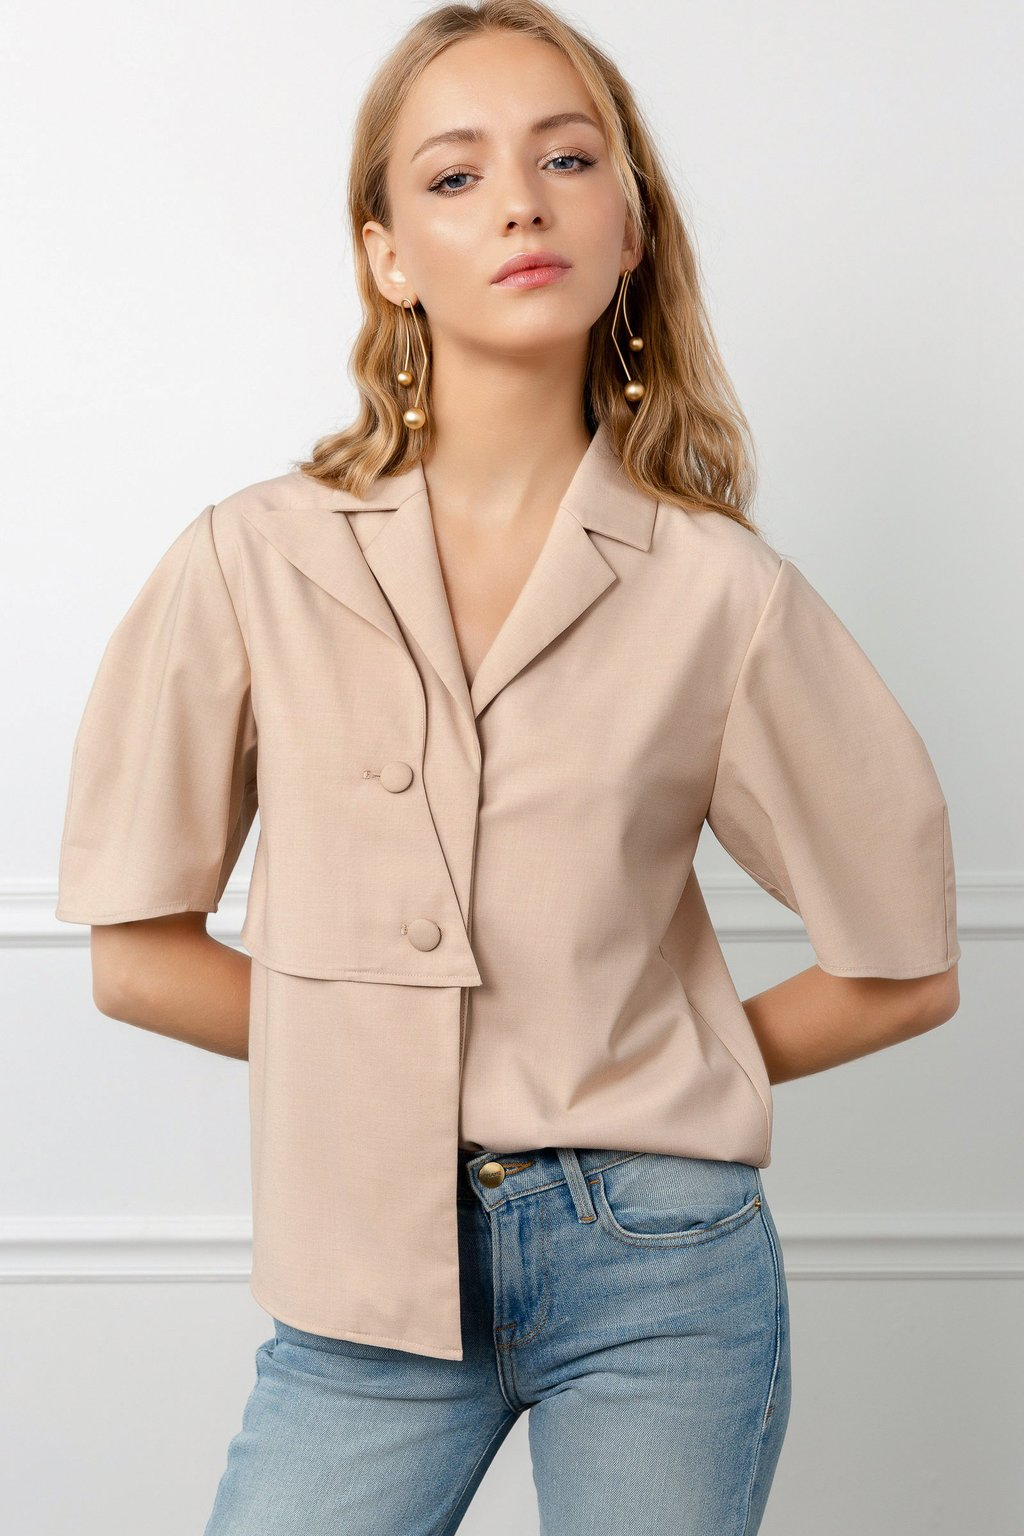 Beige Bounty Utility Style Shirt by J.ING LA women's fashion